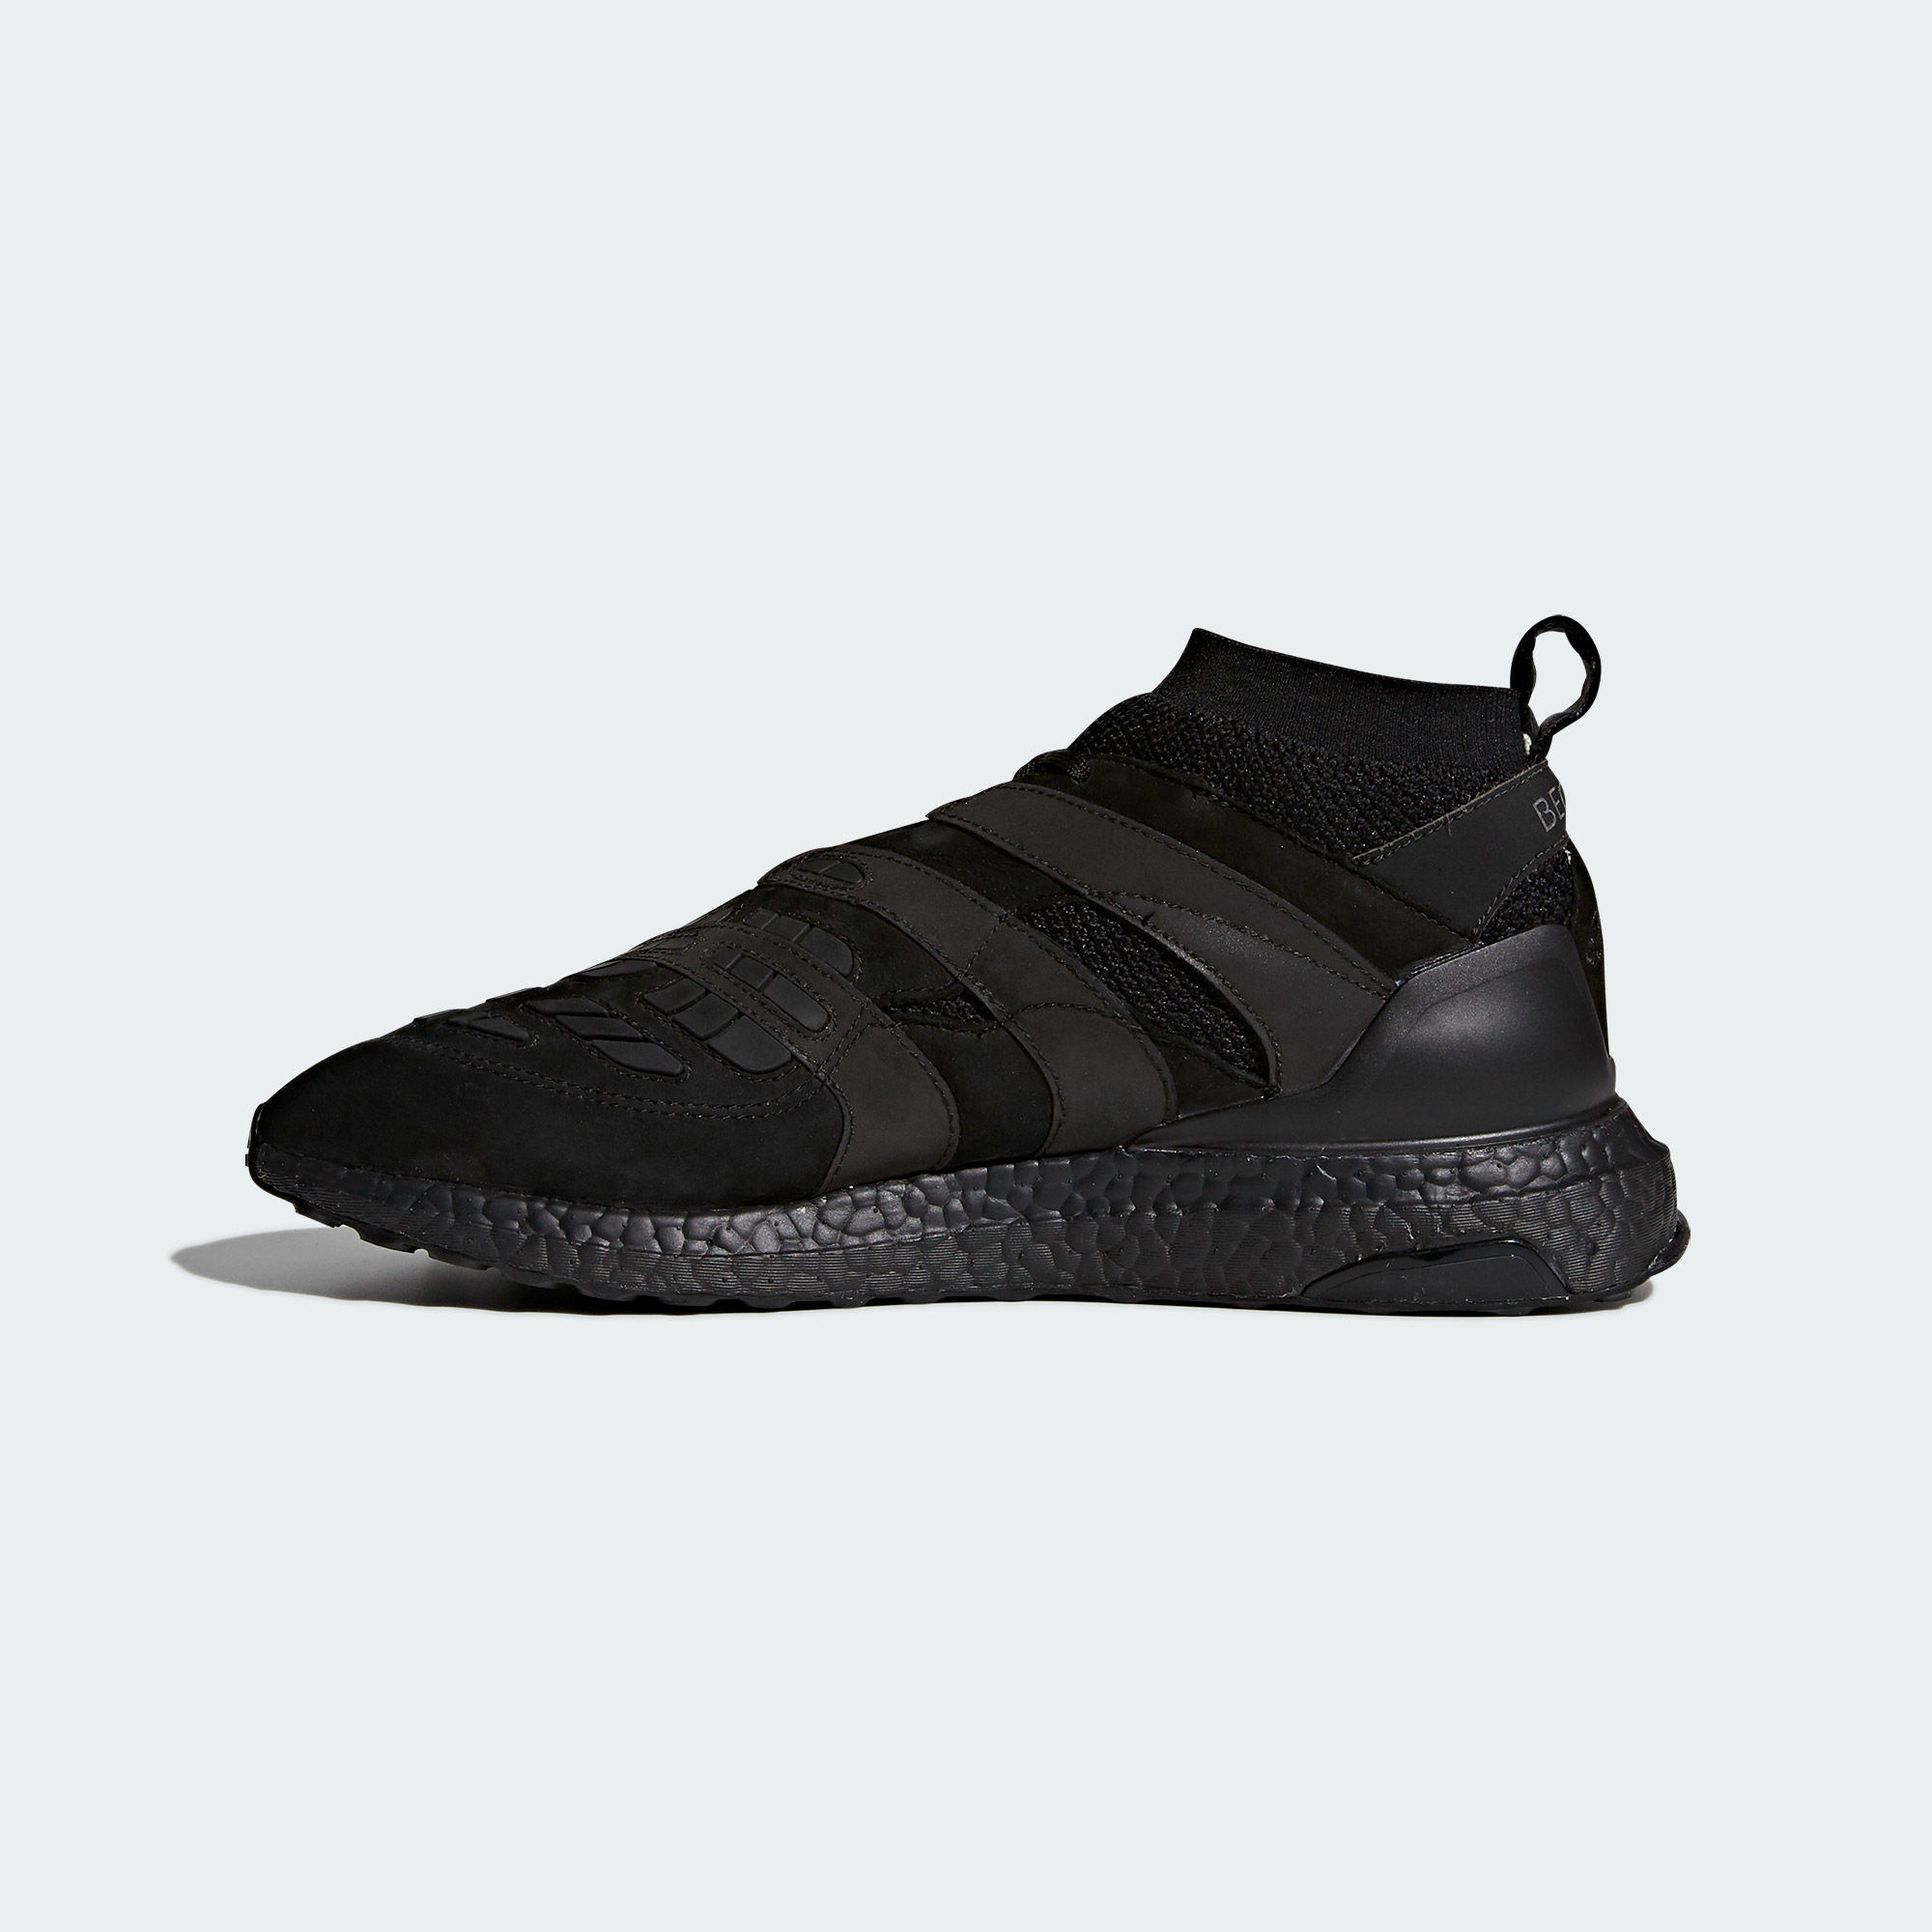 Didas Ultraboost Shoes Black